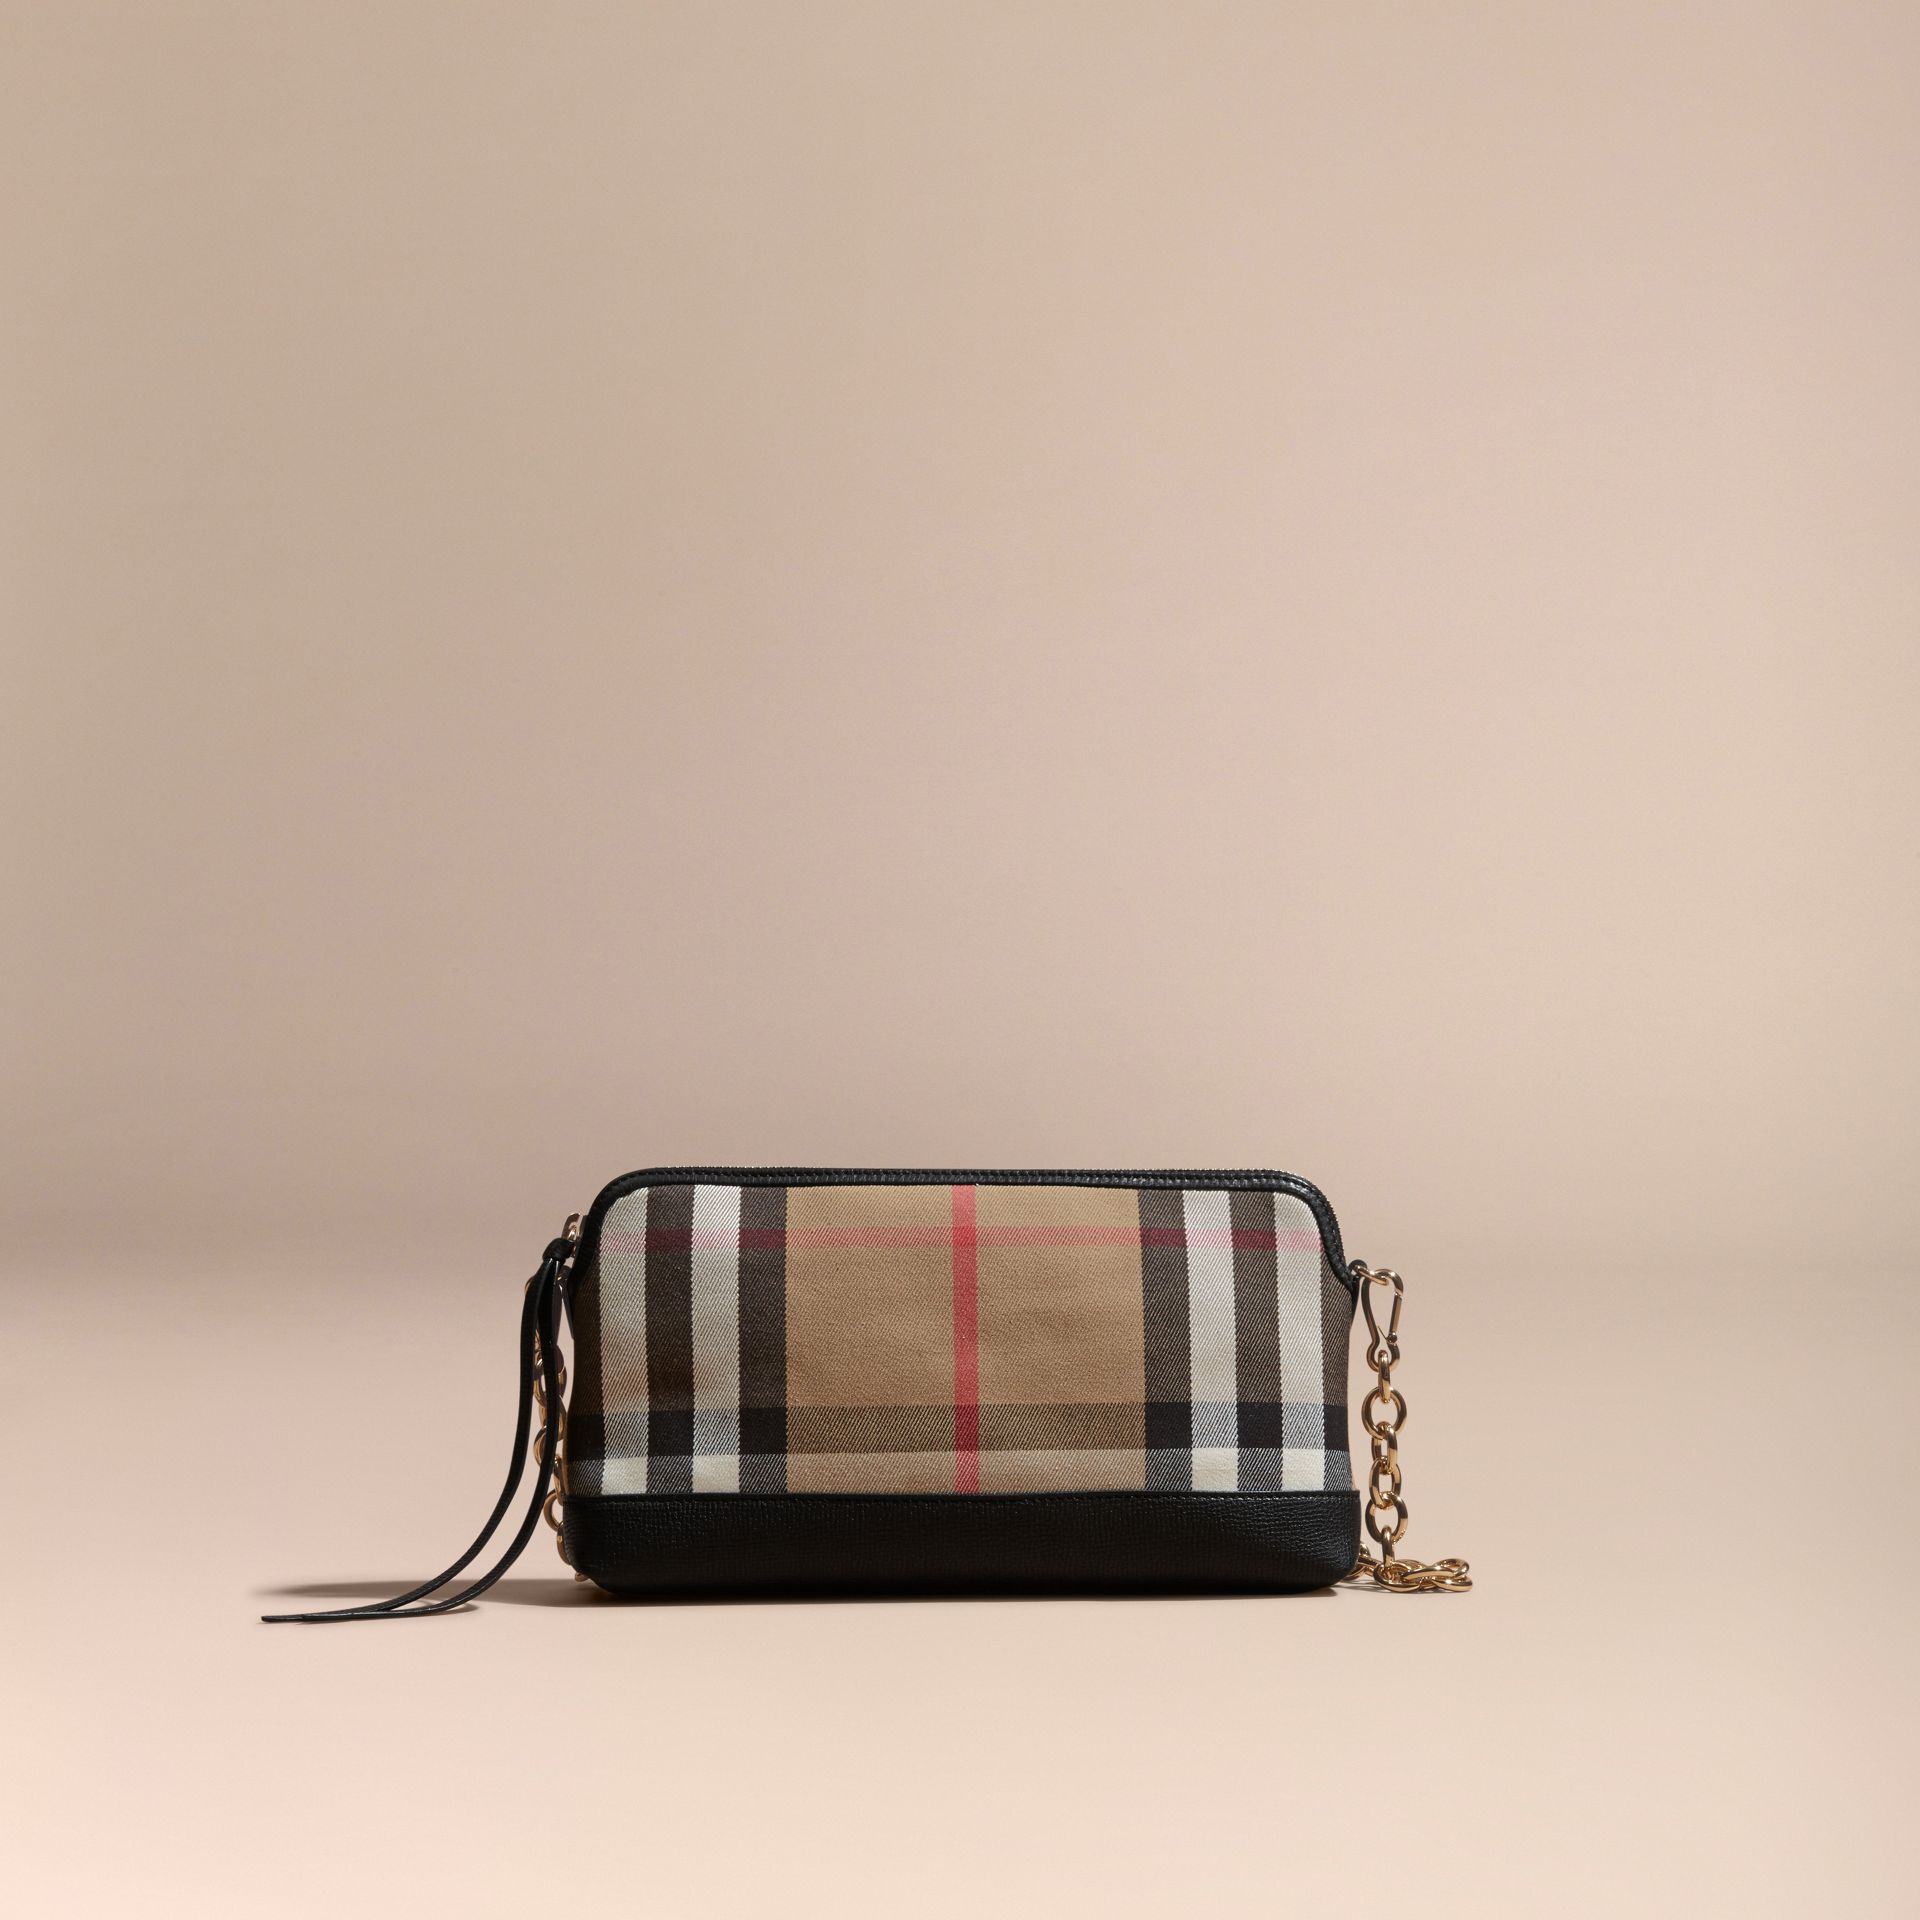 House Check and Leather Clutch Bag in Black - Women | Burberry Canada - gallery image 9